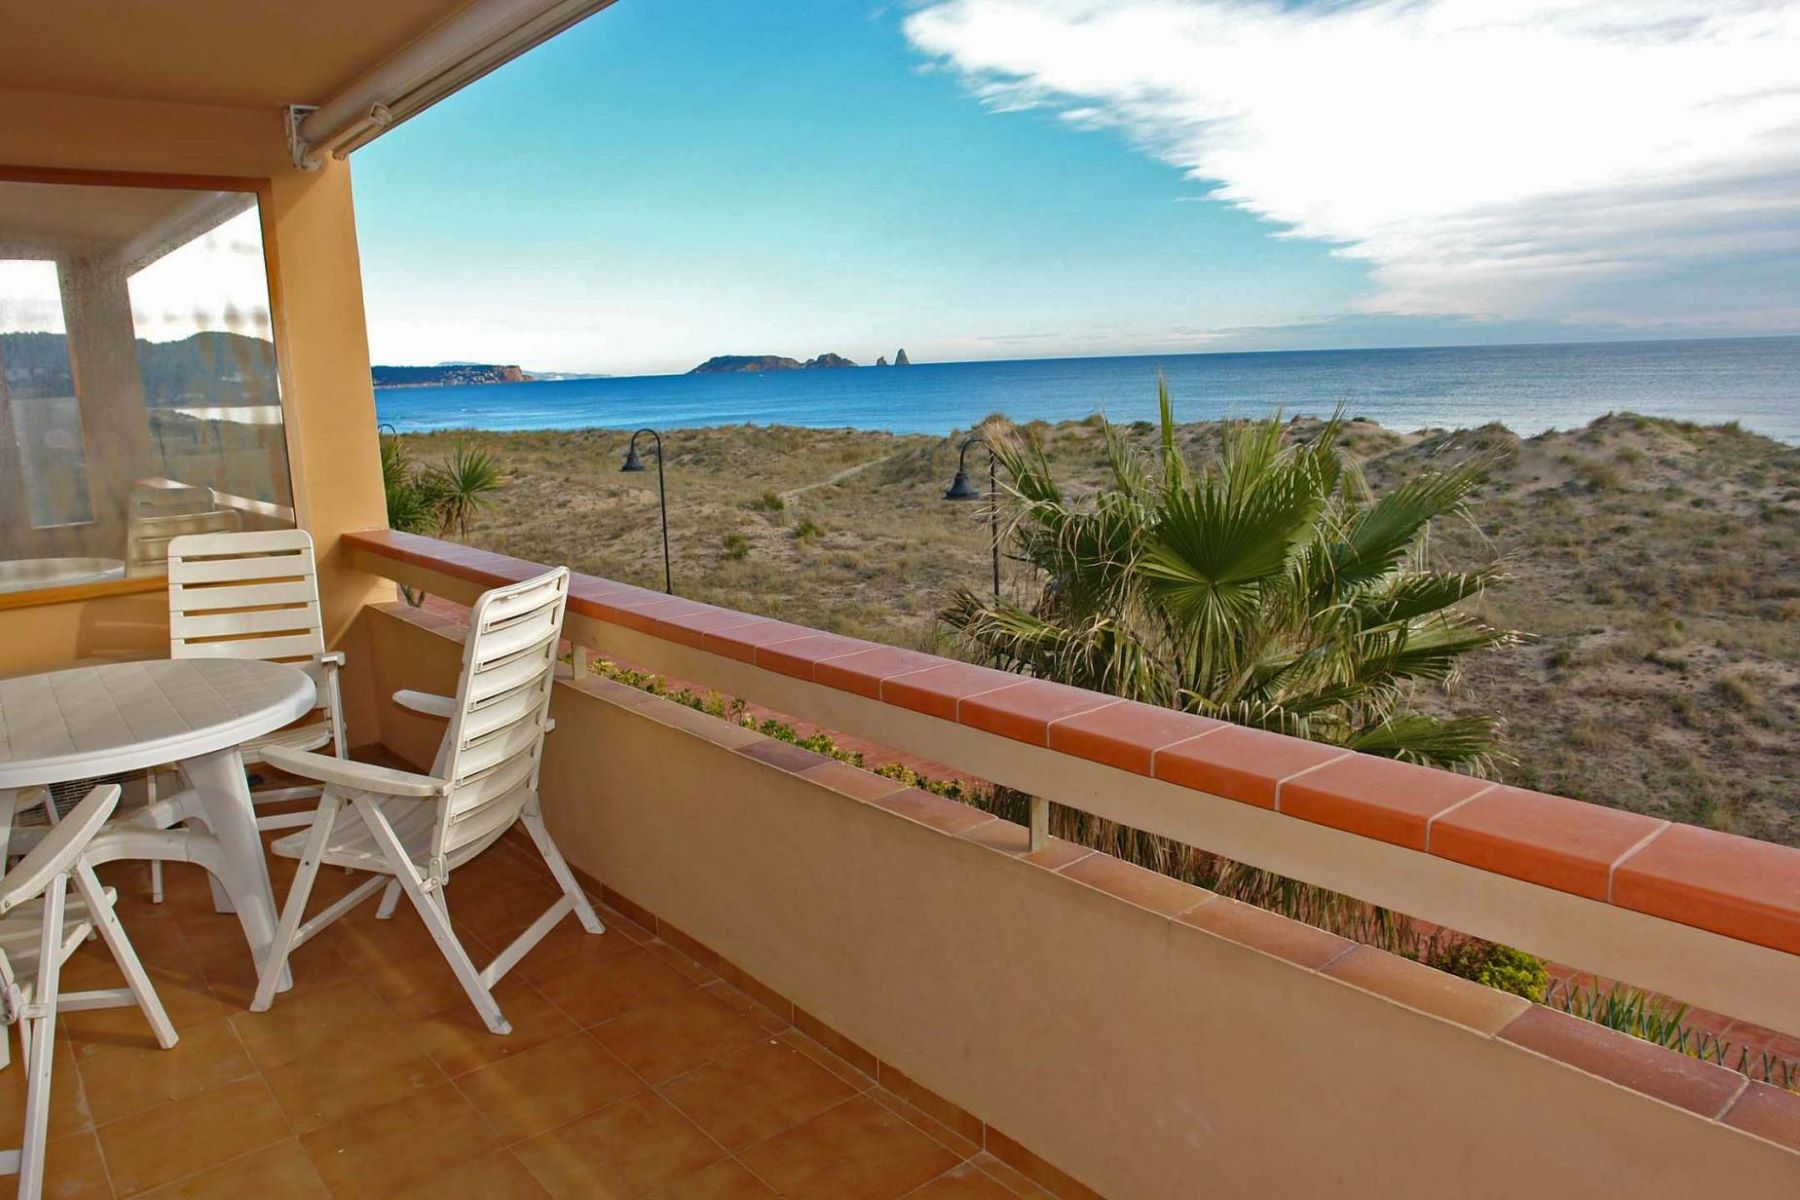 Apartment for Sale at Seafront apartment with fantastic views in Playa de Pals Pals, Costa Brava, 17256 Spain